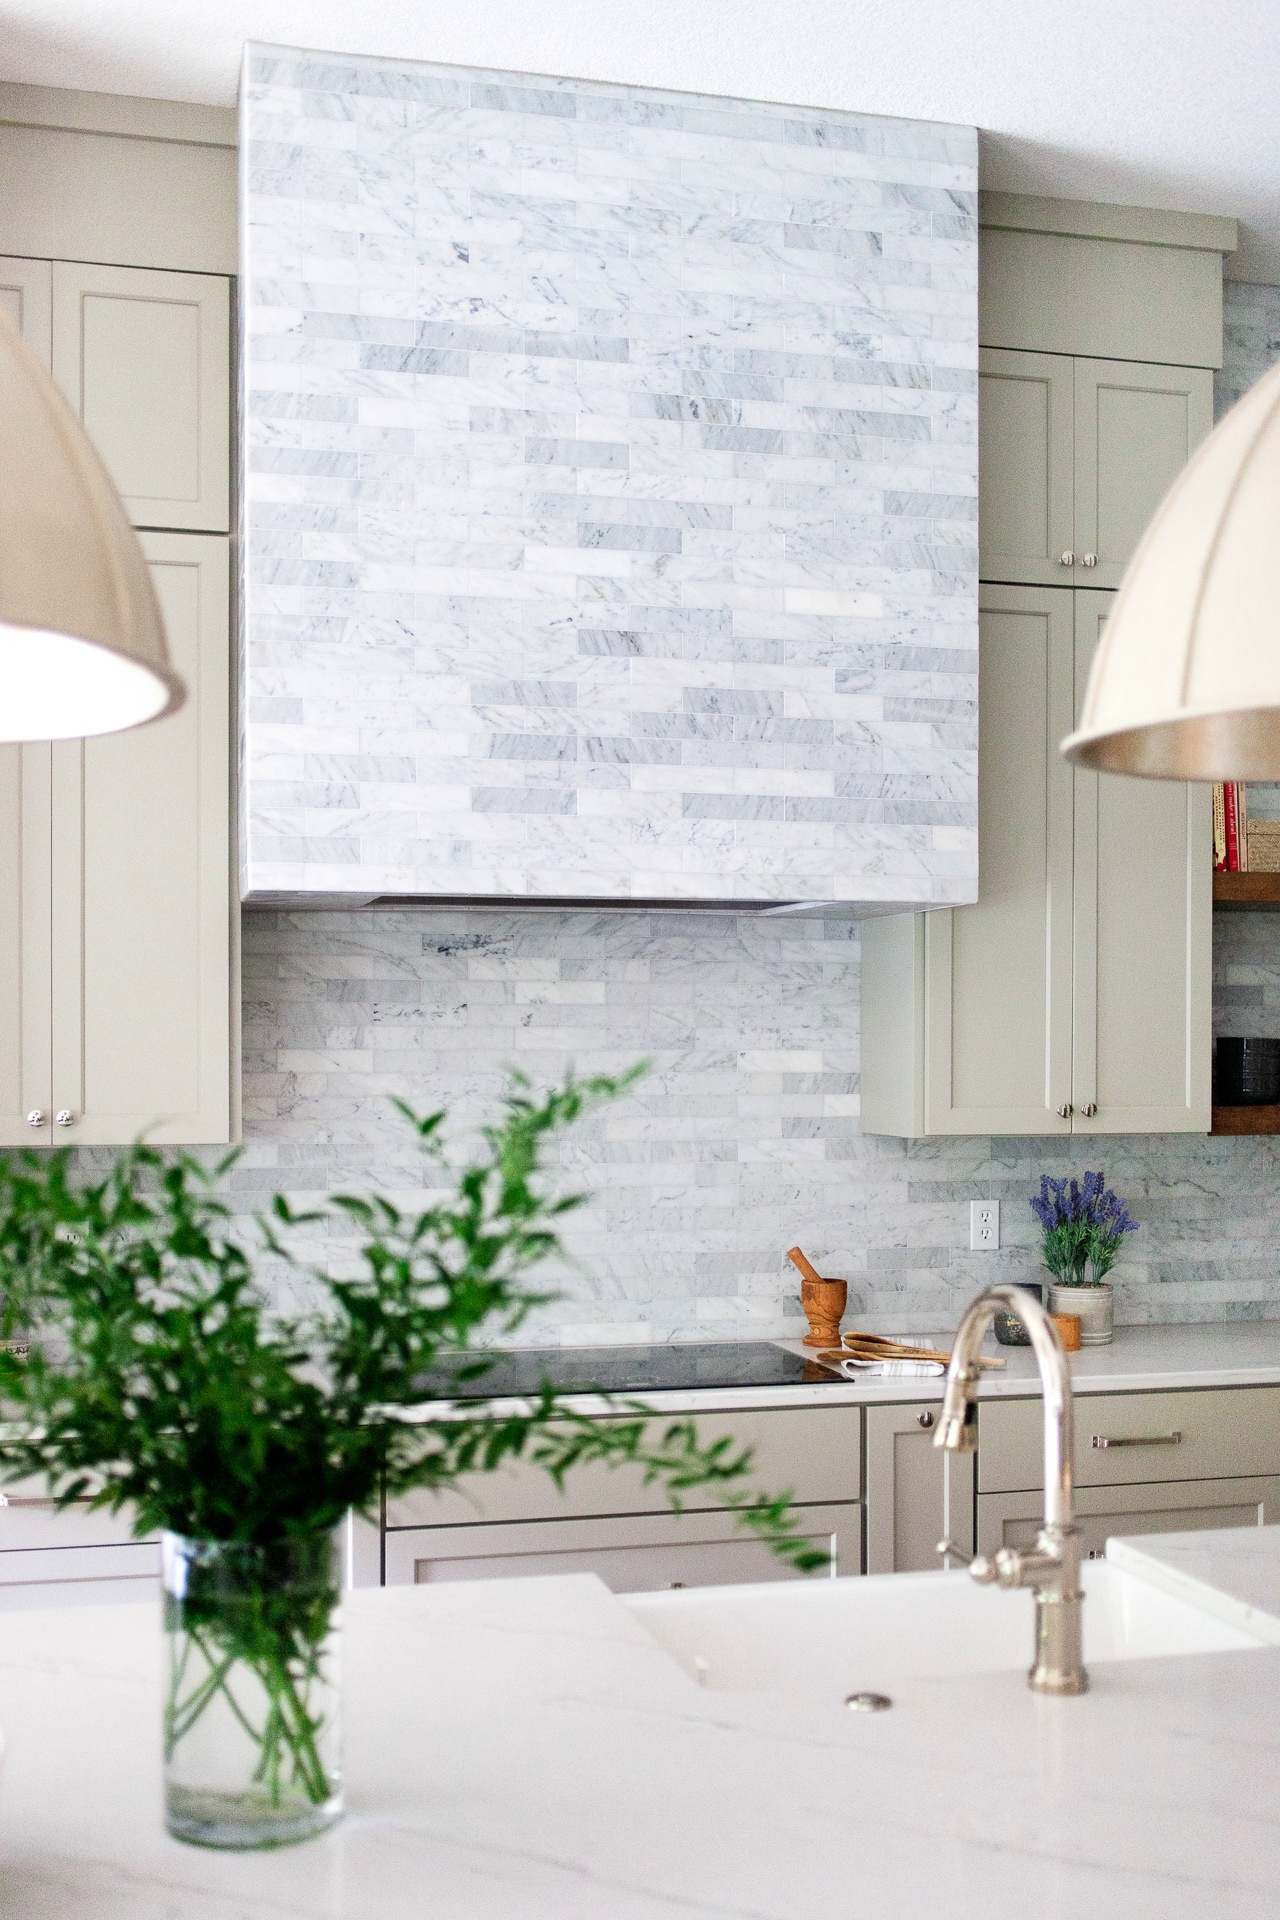 The polished nickel faucet and cabinet hardware are the perfect accent for the gray and blue tones of the marble tile.